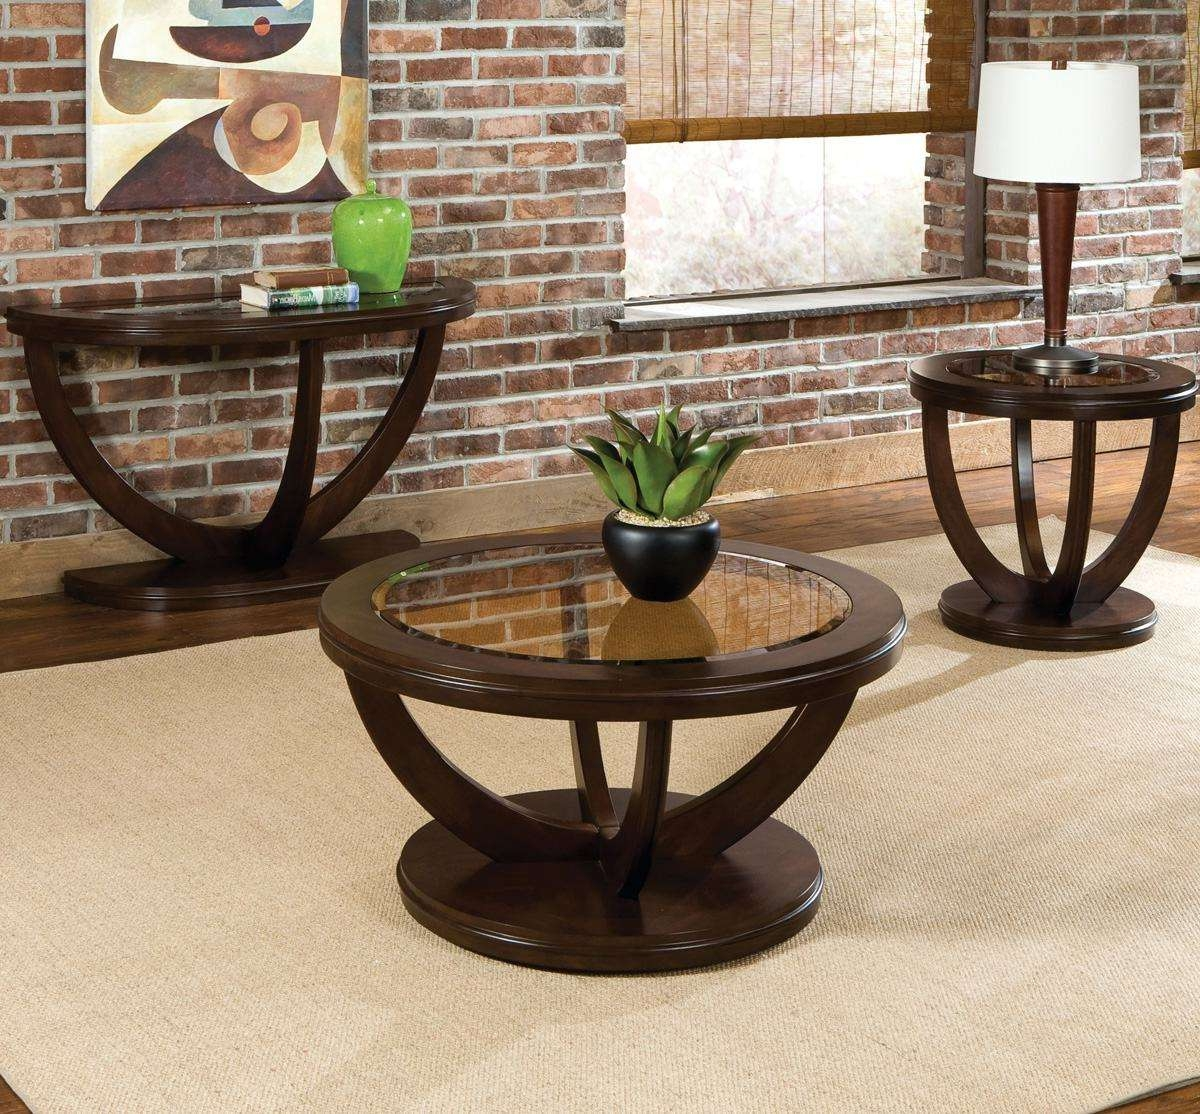 Widely Used Cherry Wood Coffee Table Sets Inside Standard Furniture La Jolla 3 Piece Coffee Table Set In Cherry (View 17 of 20)